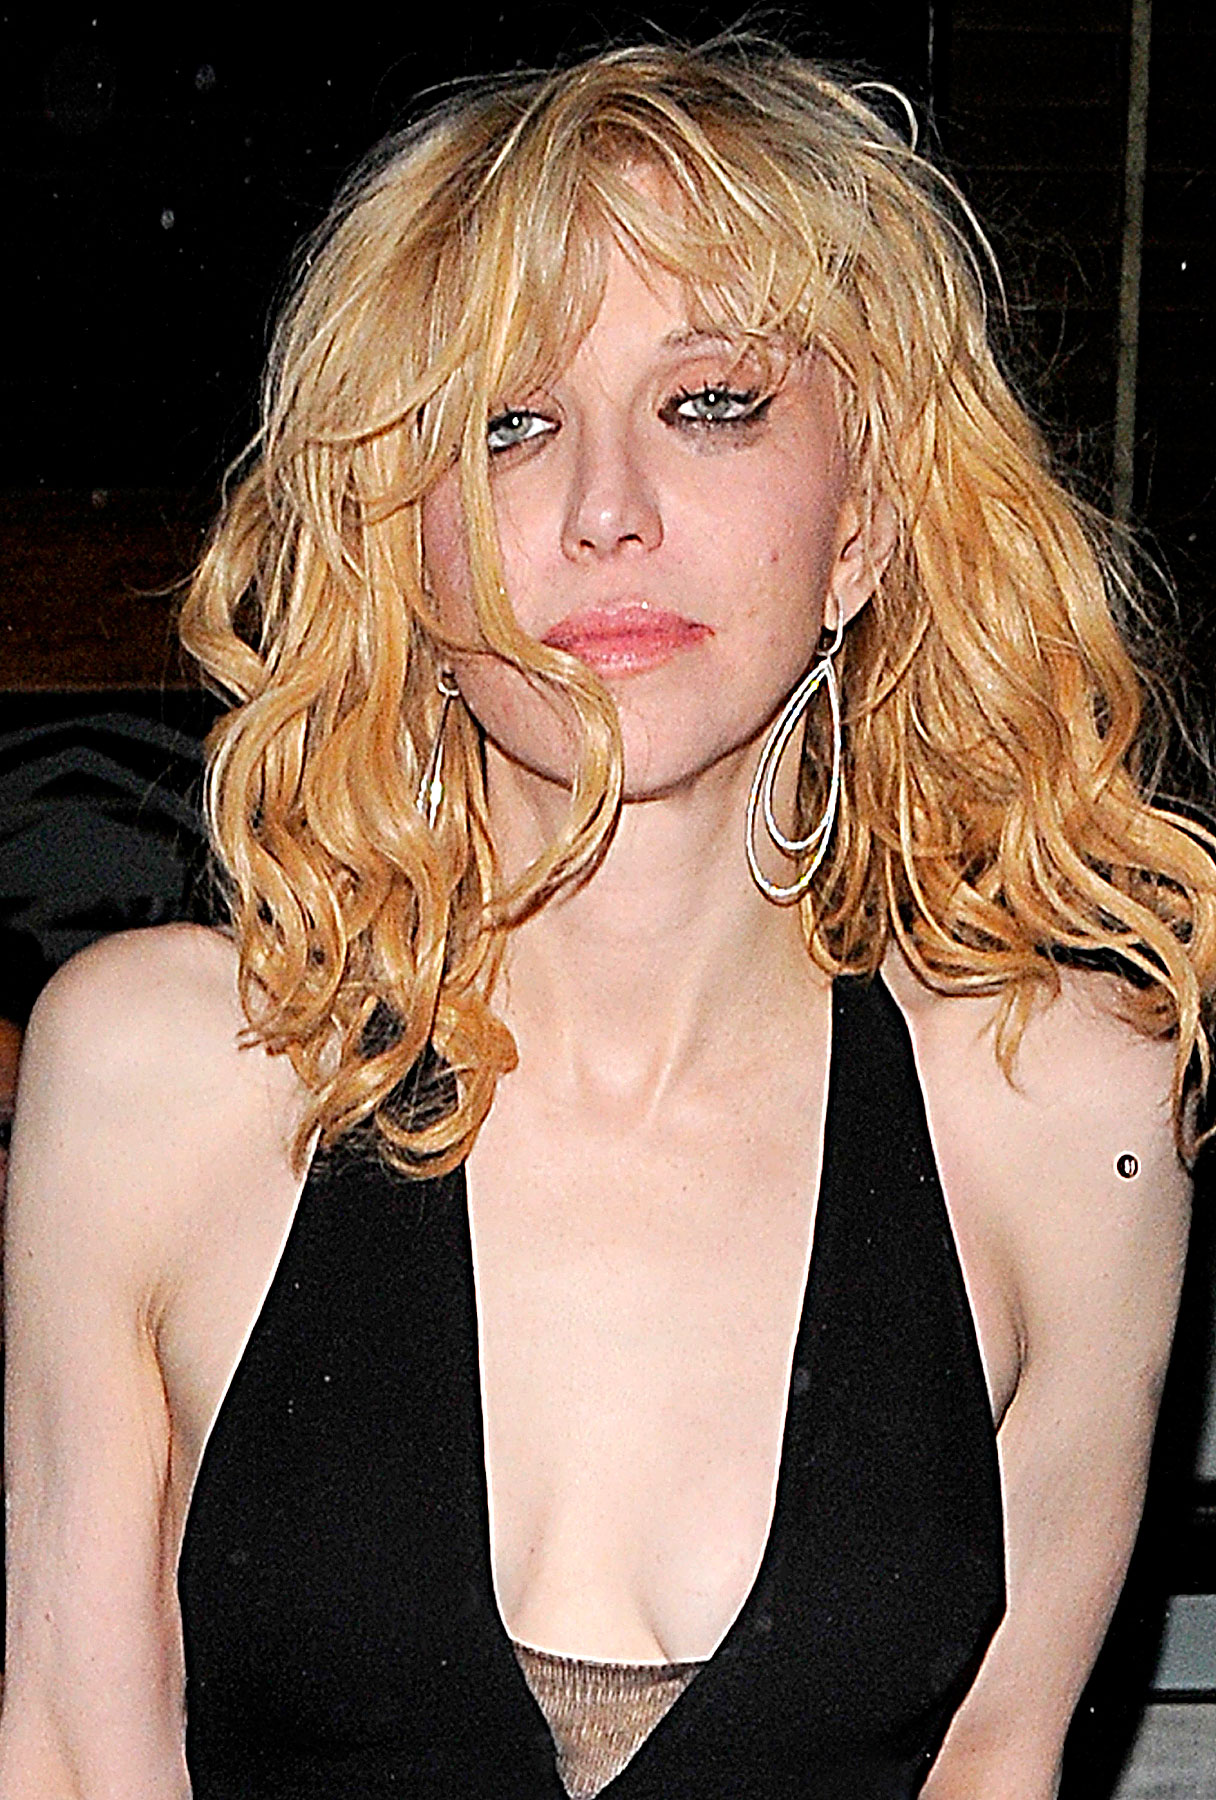 Courtney Love Has Really Pulled Herself Together!